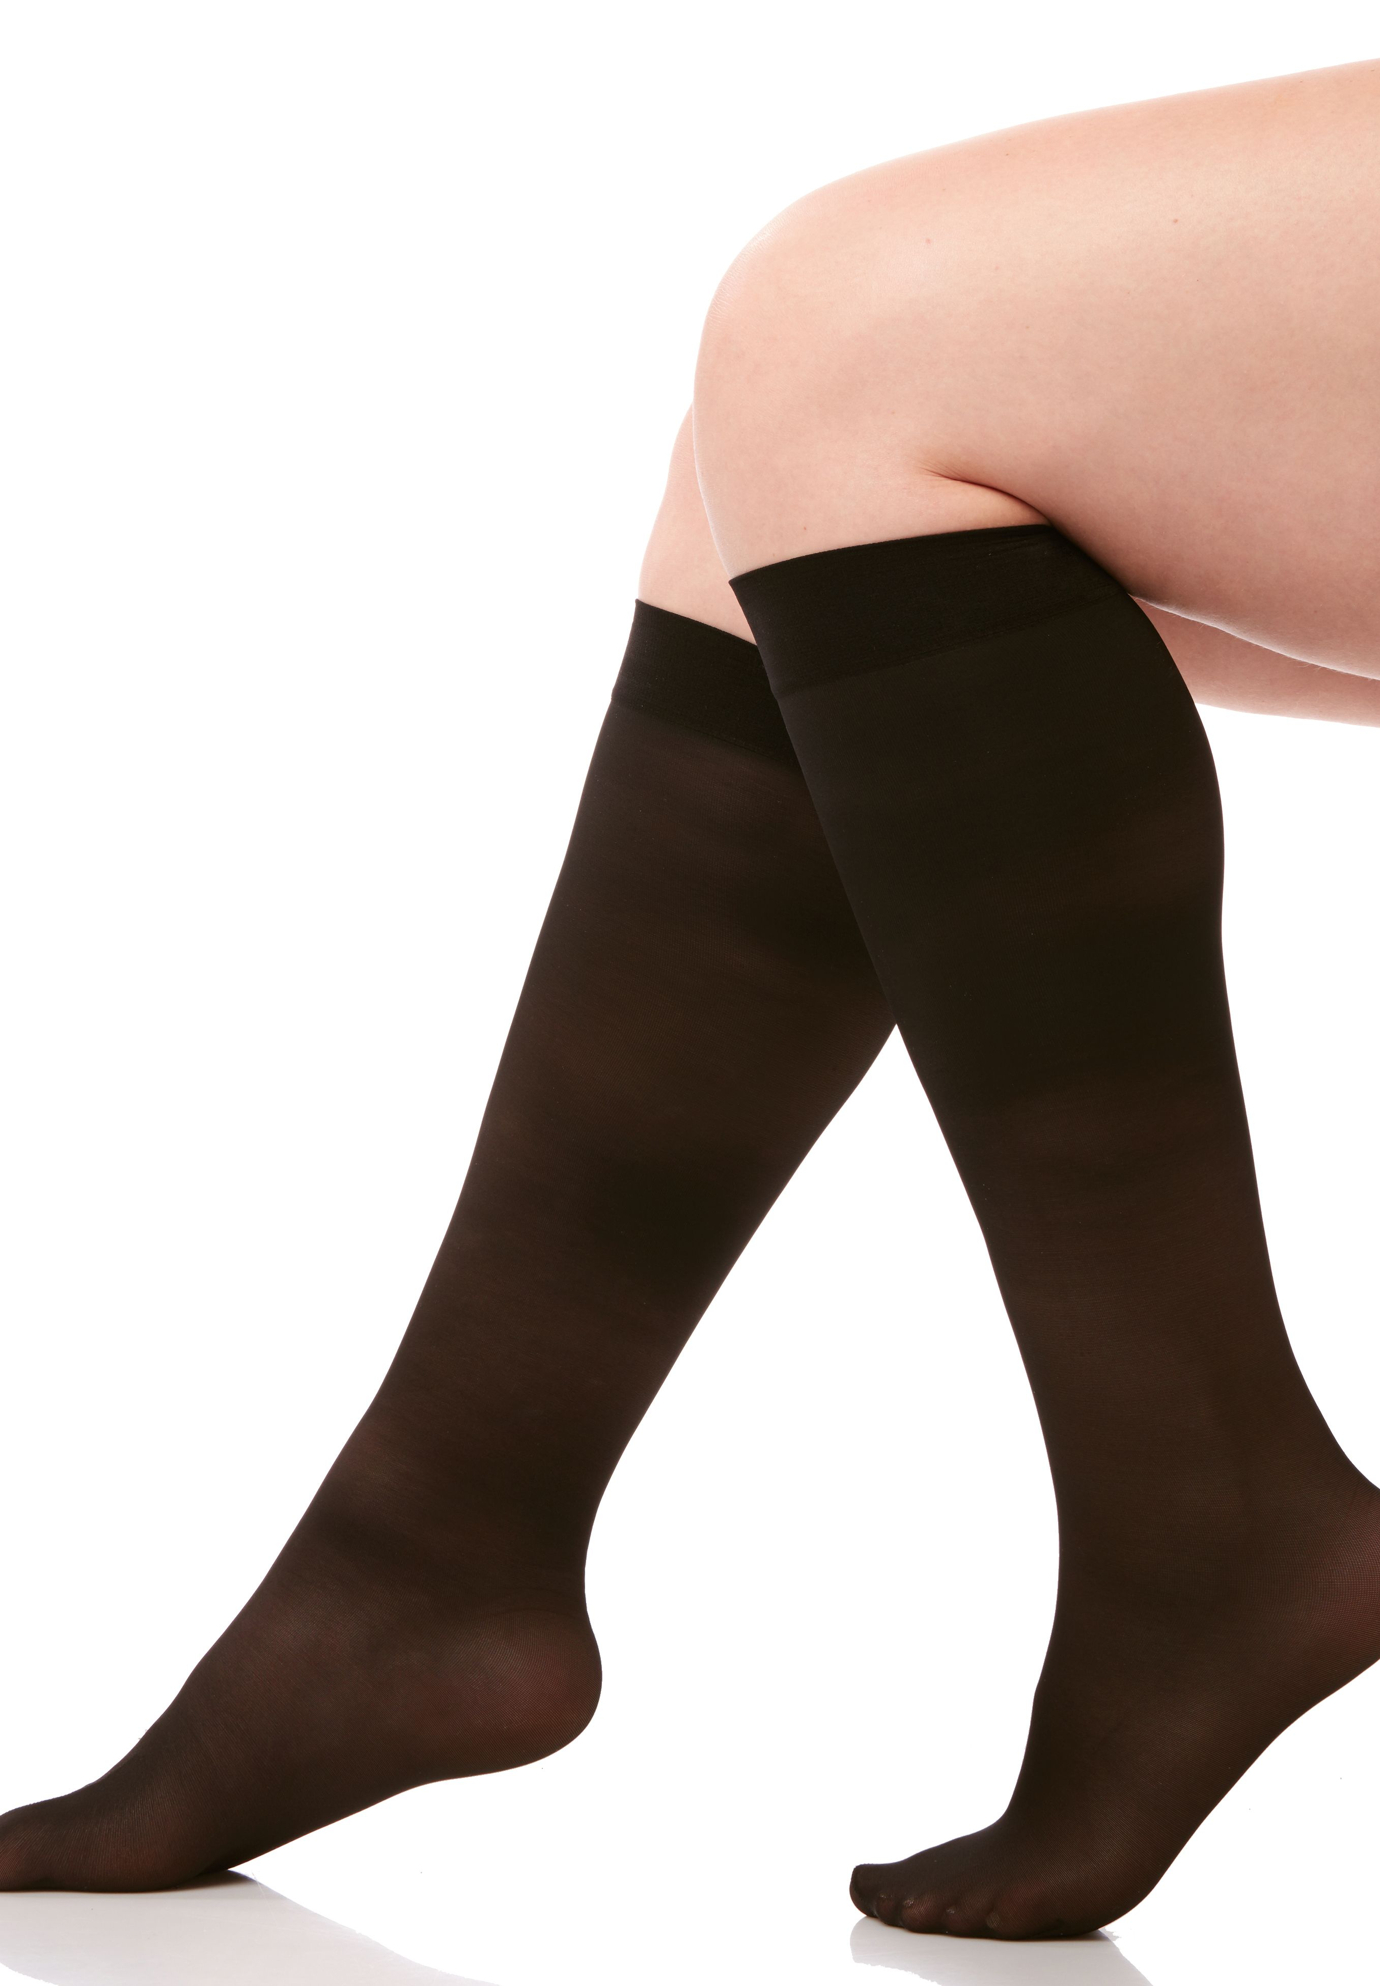 Light Control Graduated Compression Sheer Trouser Socks,